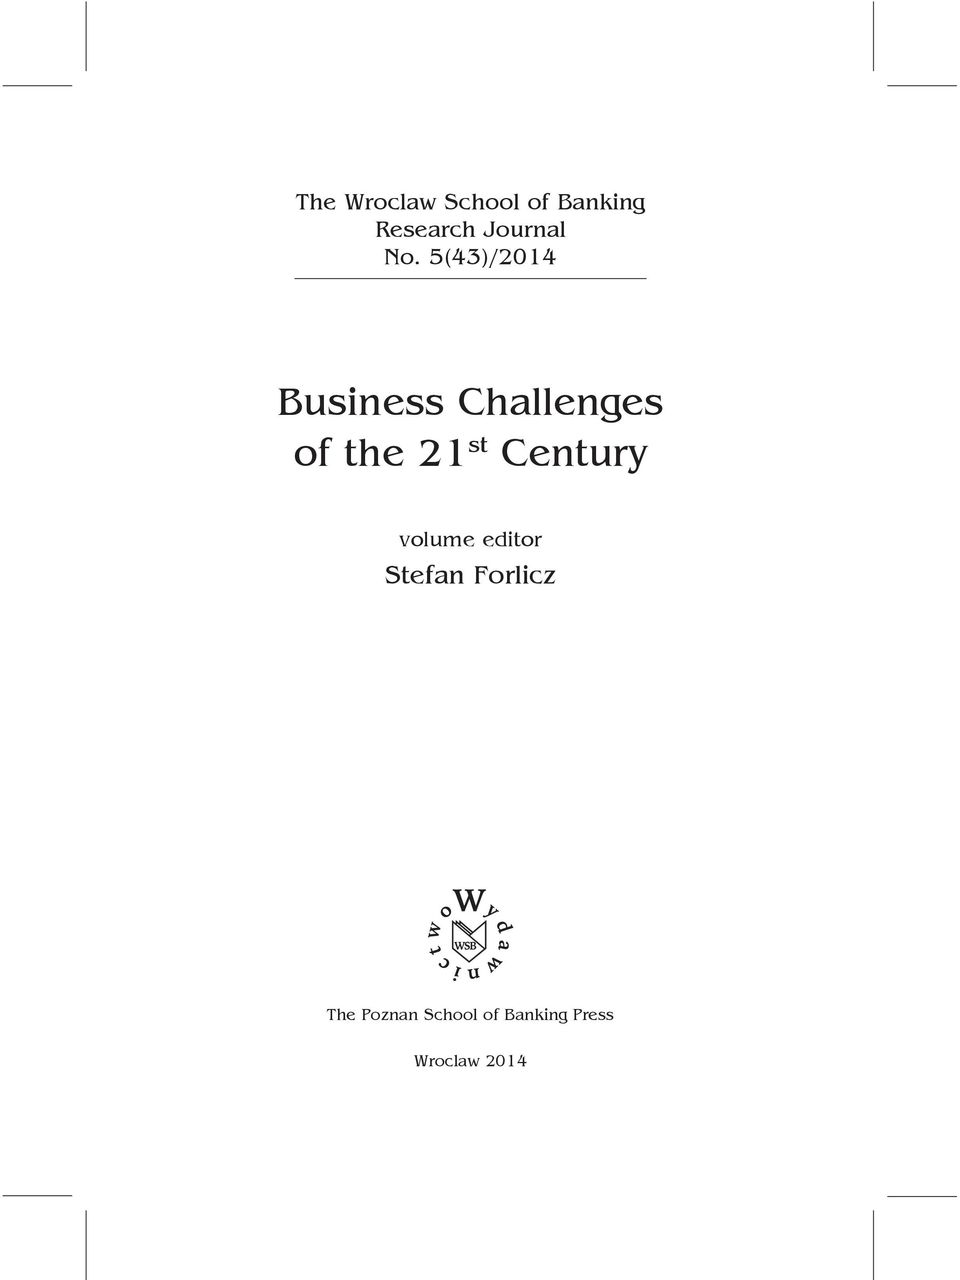 5(43)/2014 Business Challenges of the 21 st